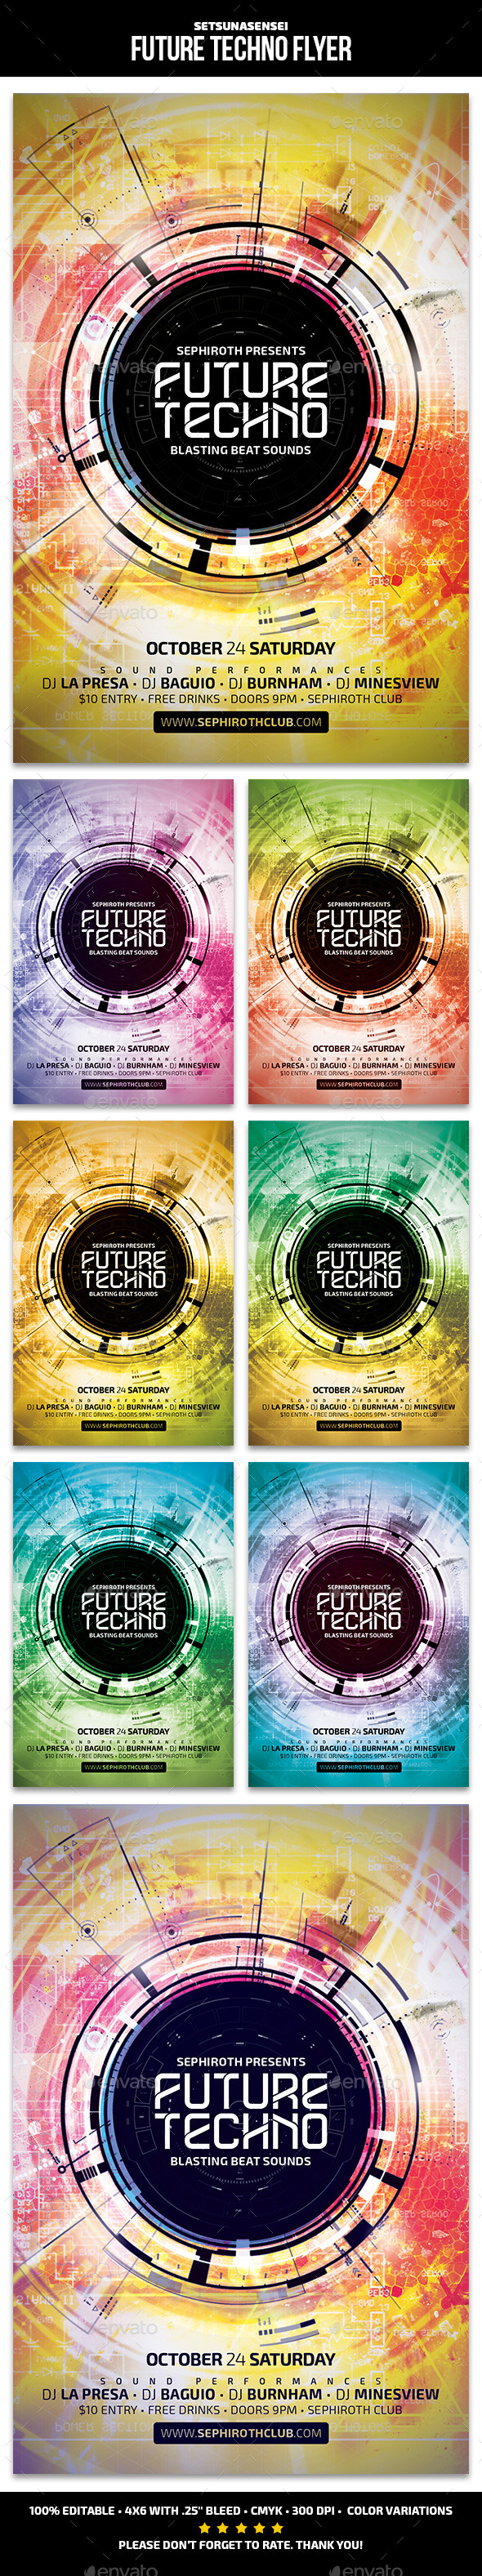 Future Techno Flyer - Clubs & Parties Events